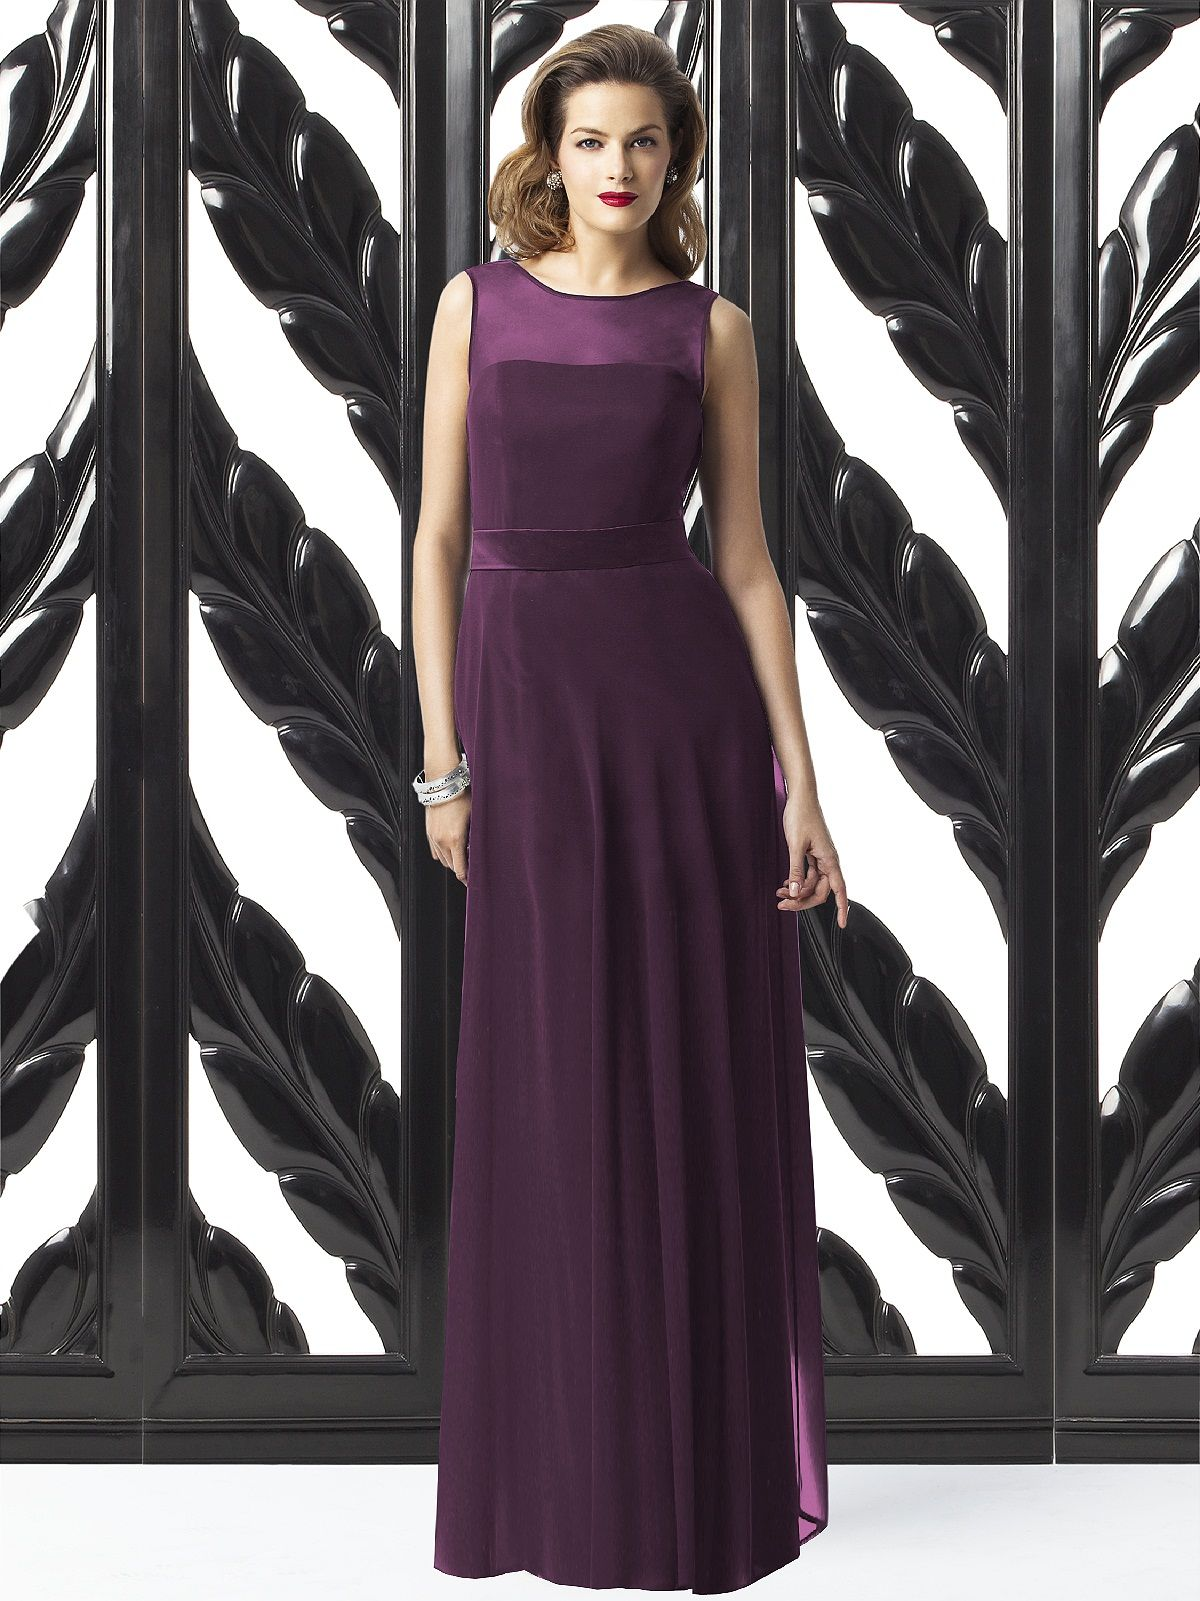 Dessy collection style bridesmaids front b u p wedding